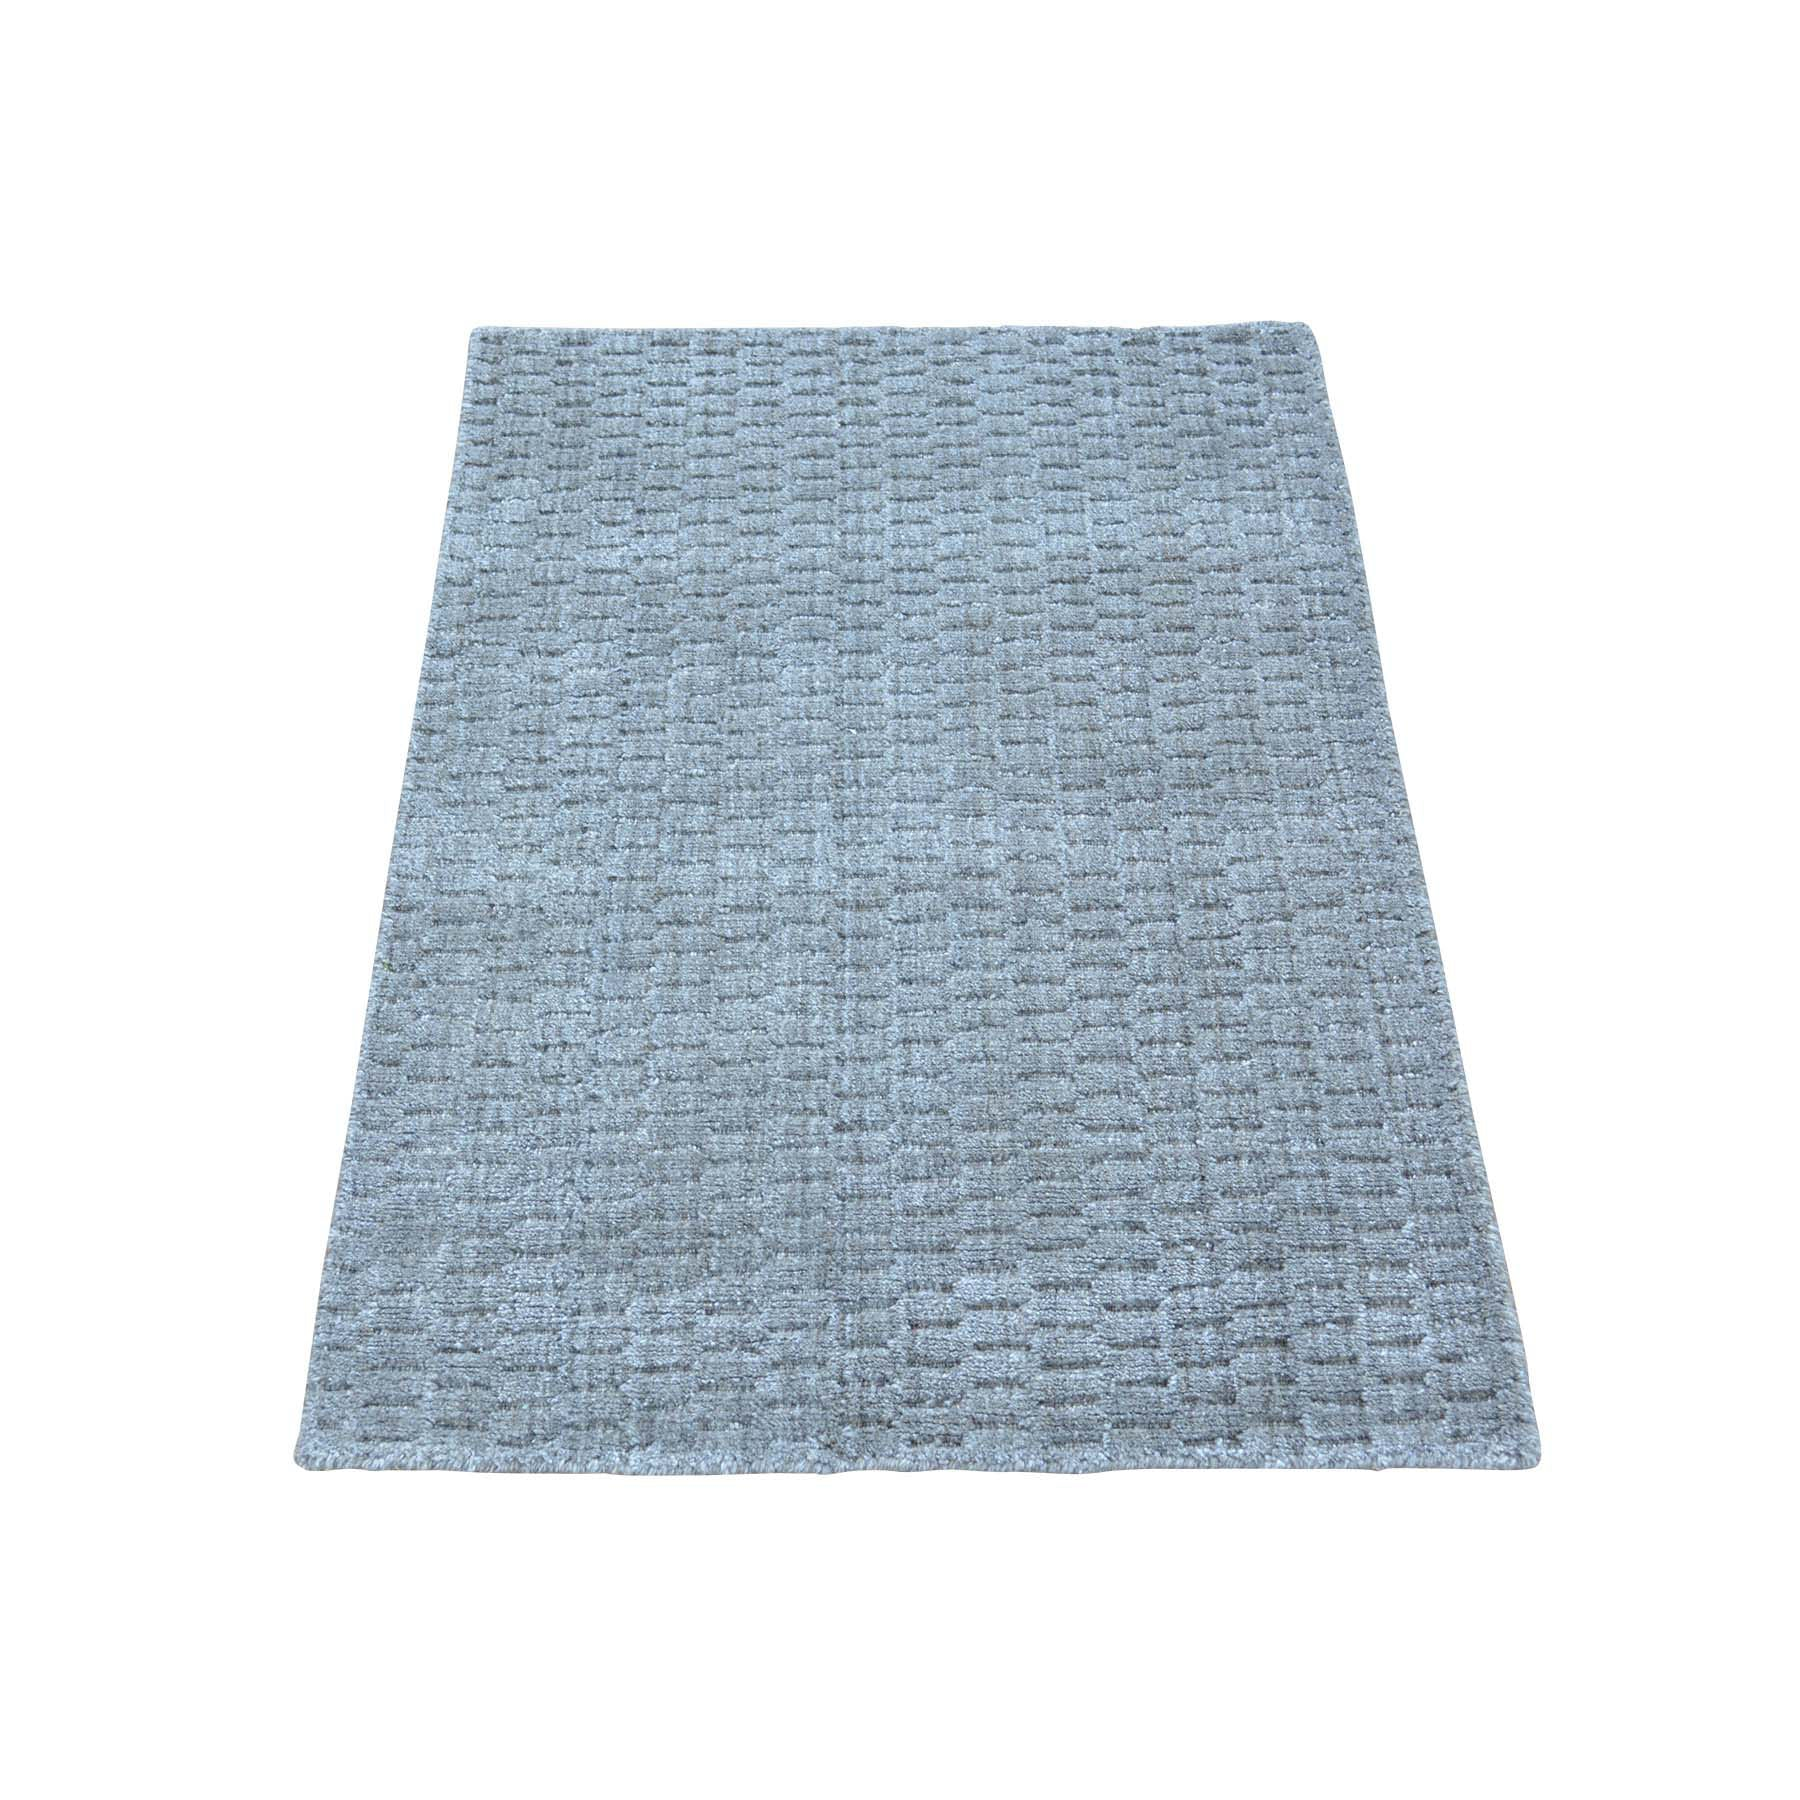 "Handmade Modern and Contemporary Rectangle Rug > Design# SH29958 > Size: 2'-0"" x 3'-0"" [ONLINE ONLY]"